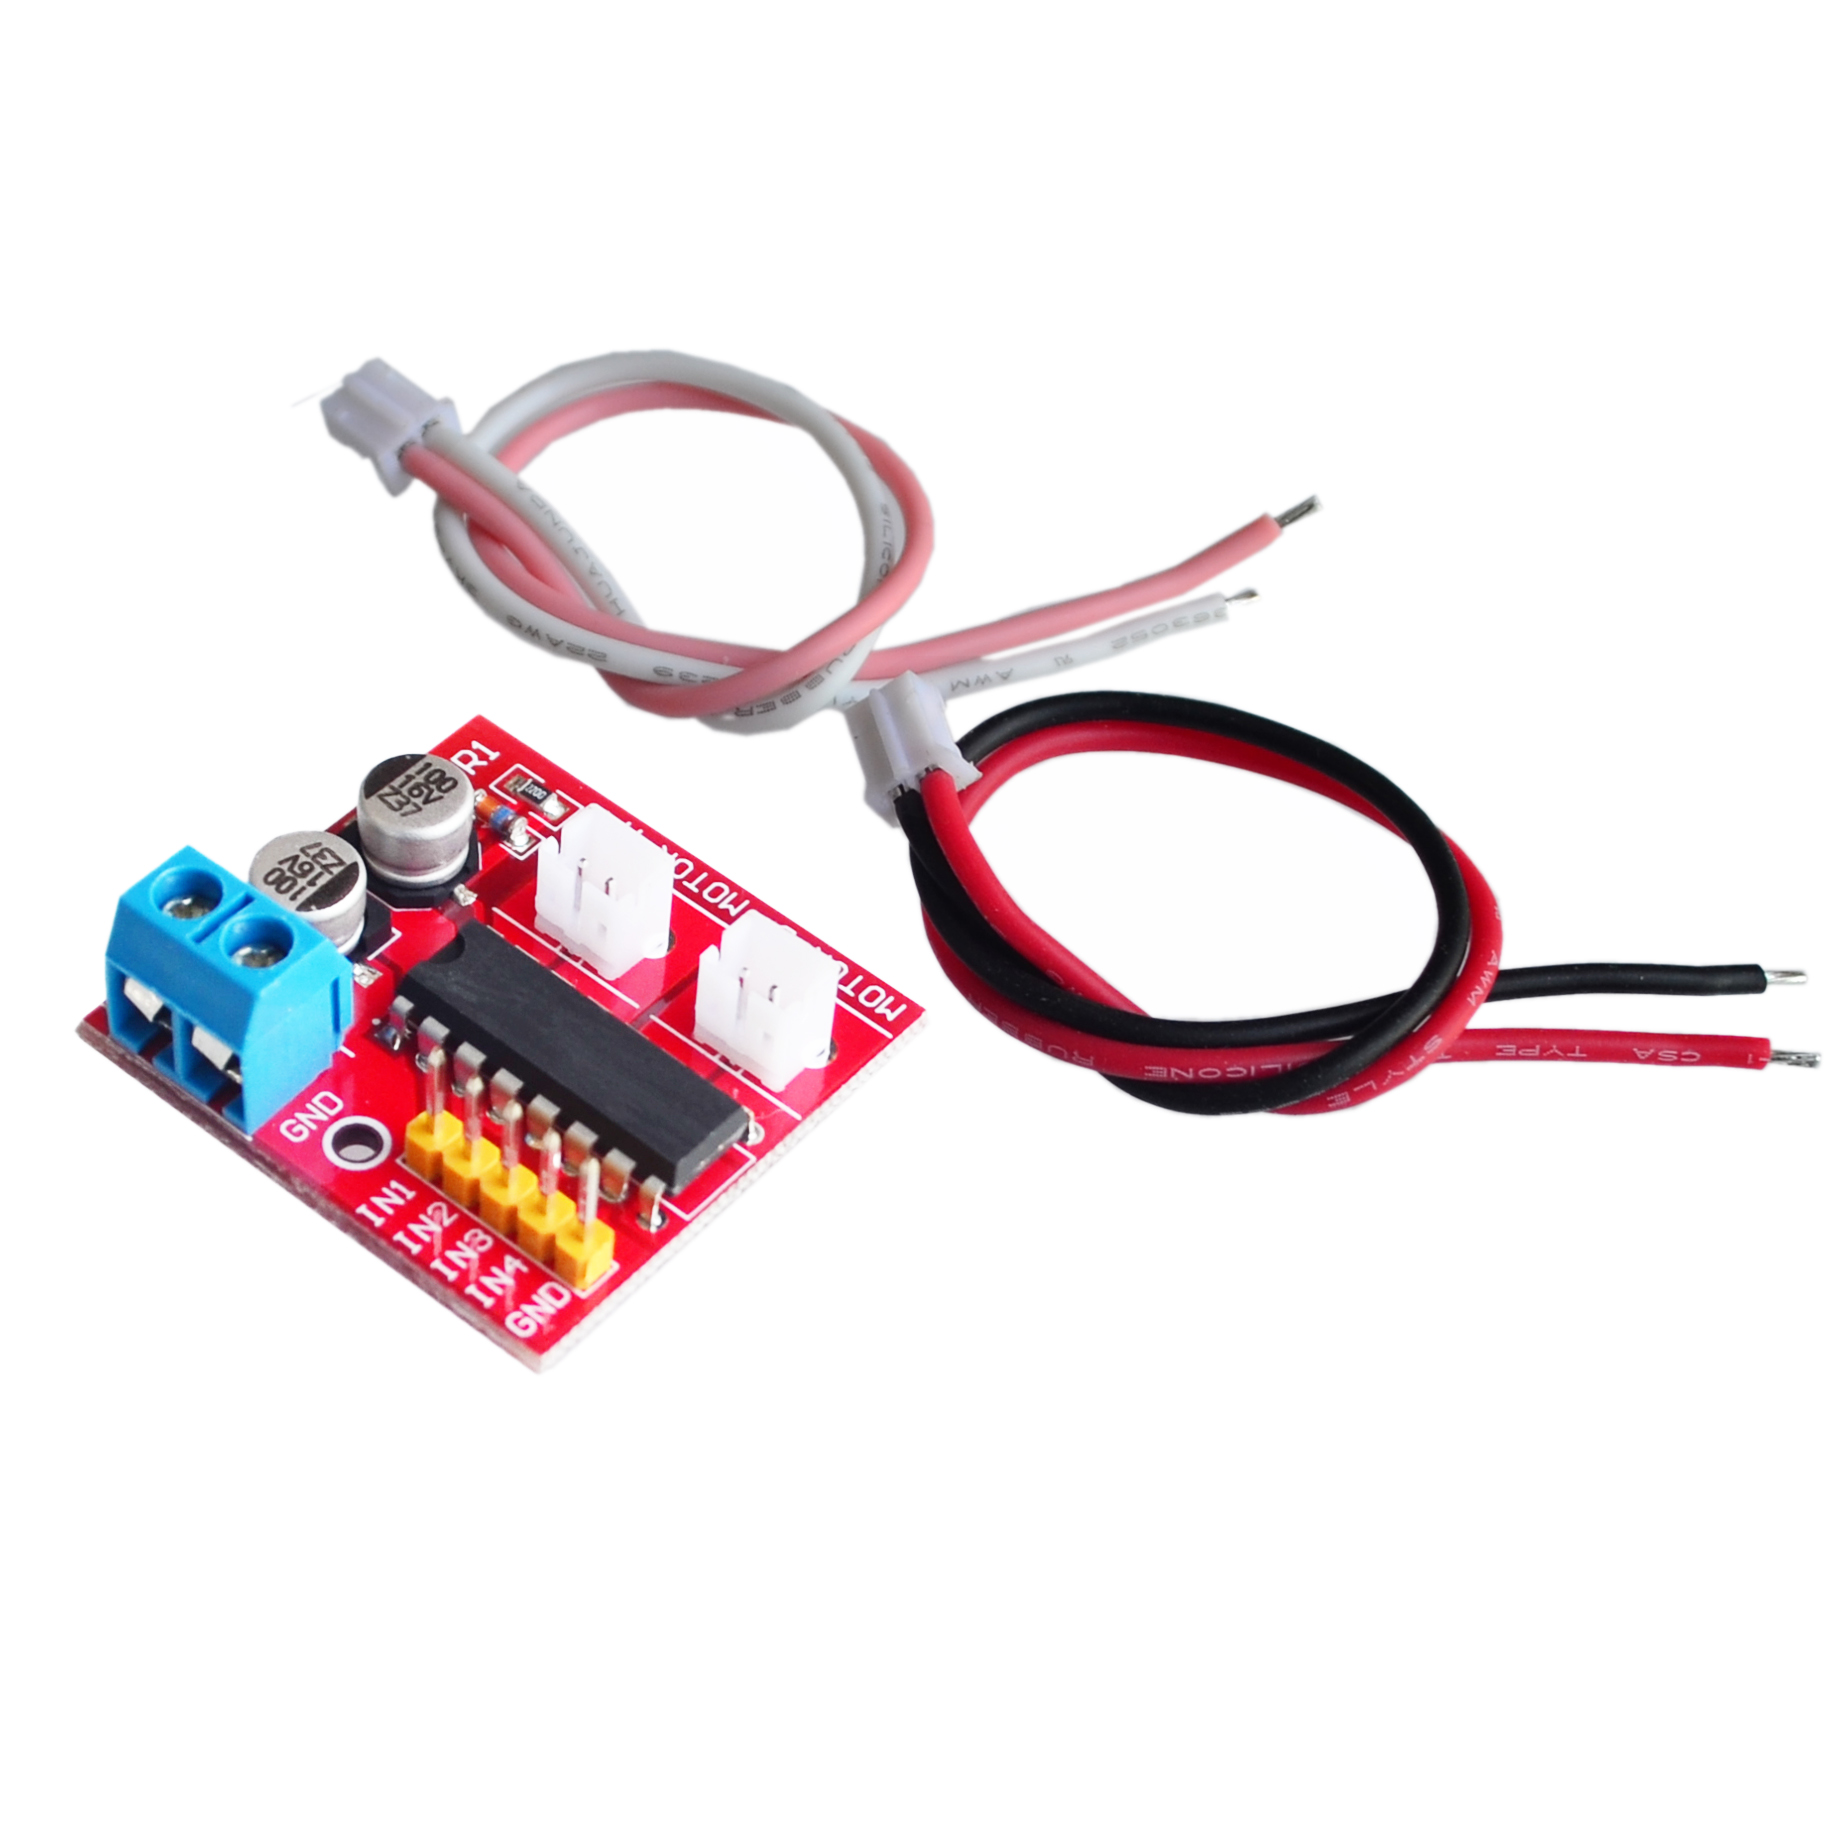 Buy Speed Control Kit And Get Free Shipping On L293d Secret Motor Driver Electronic